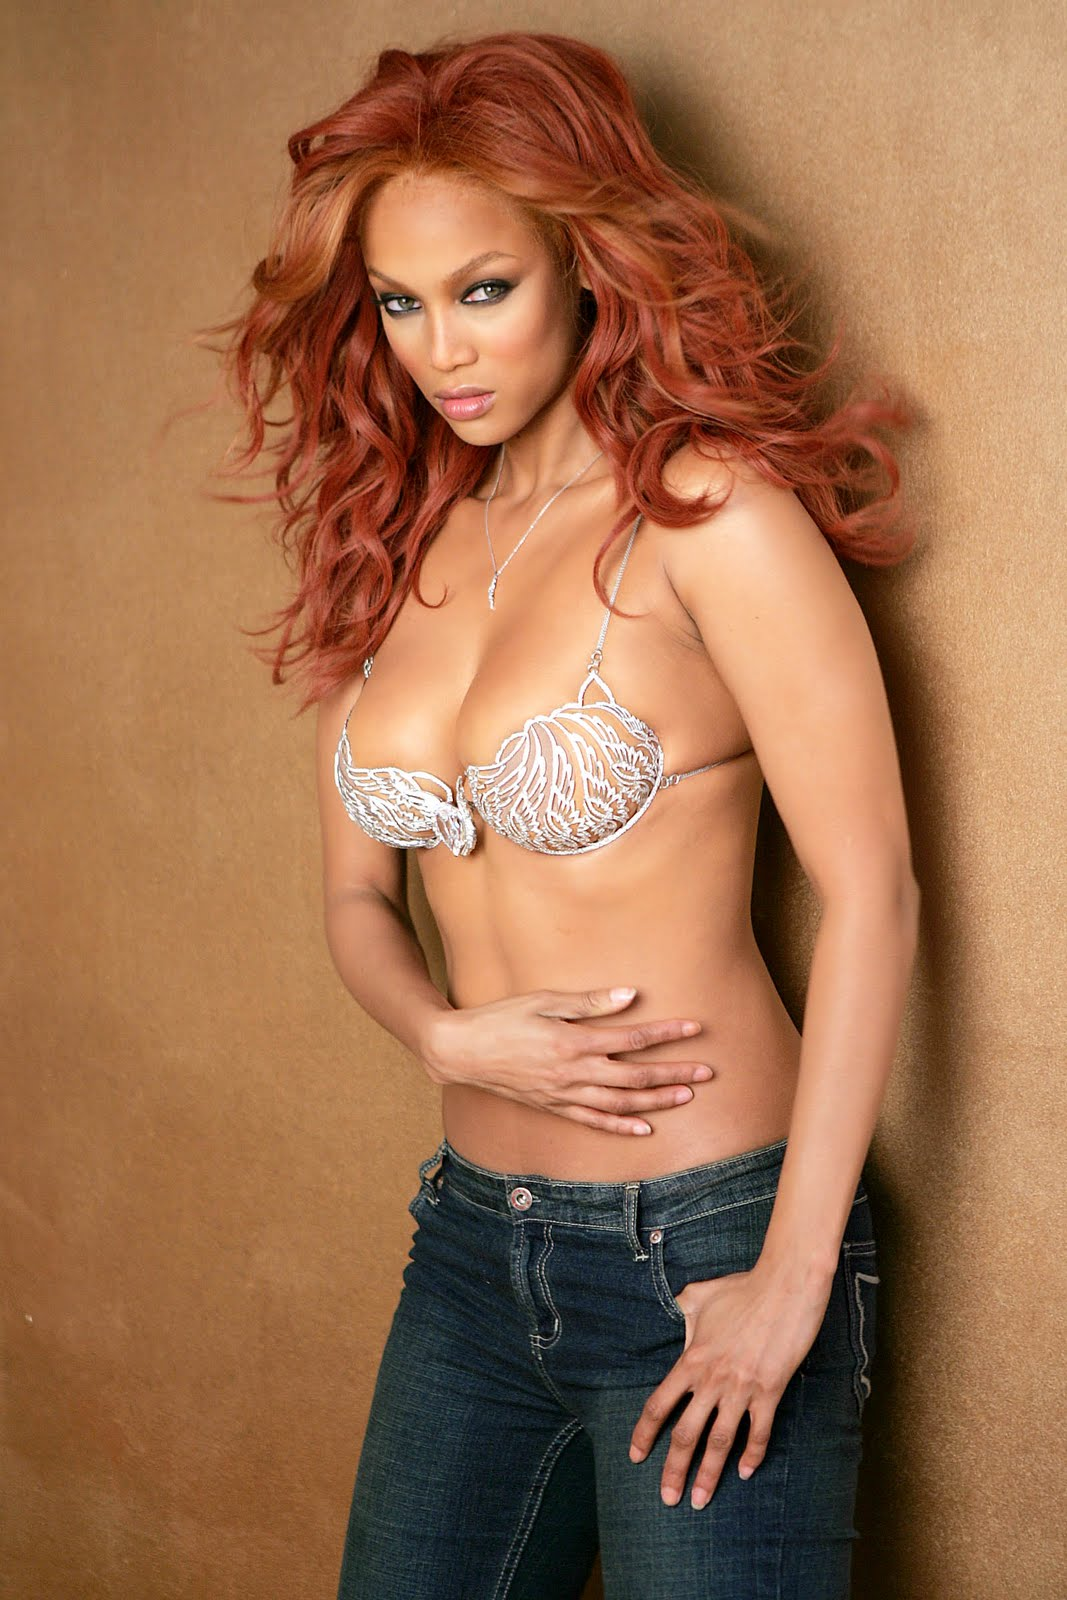 Tyra Banks - Undressing to show hot body in lingerie - YouTube